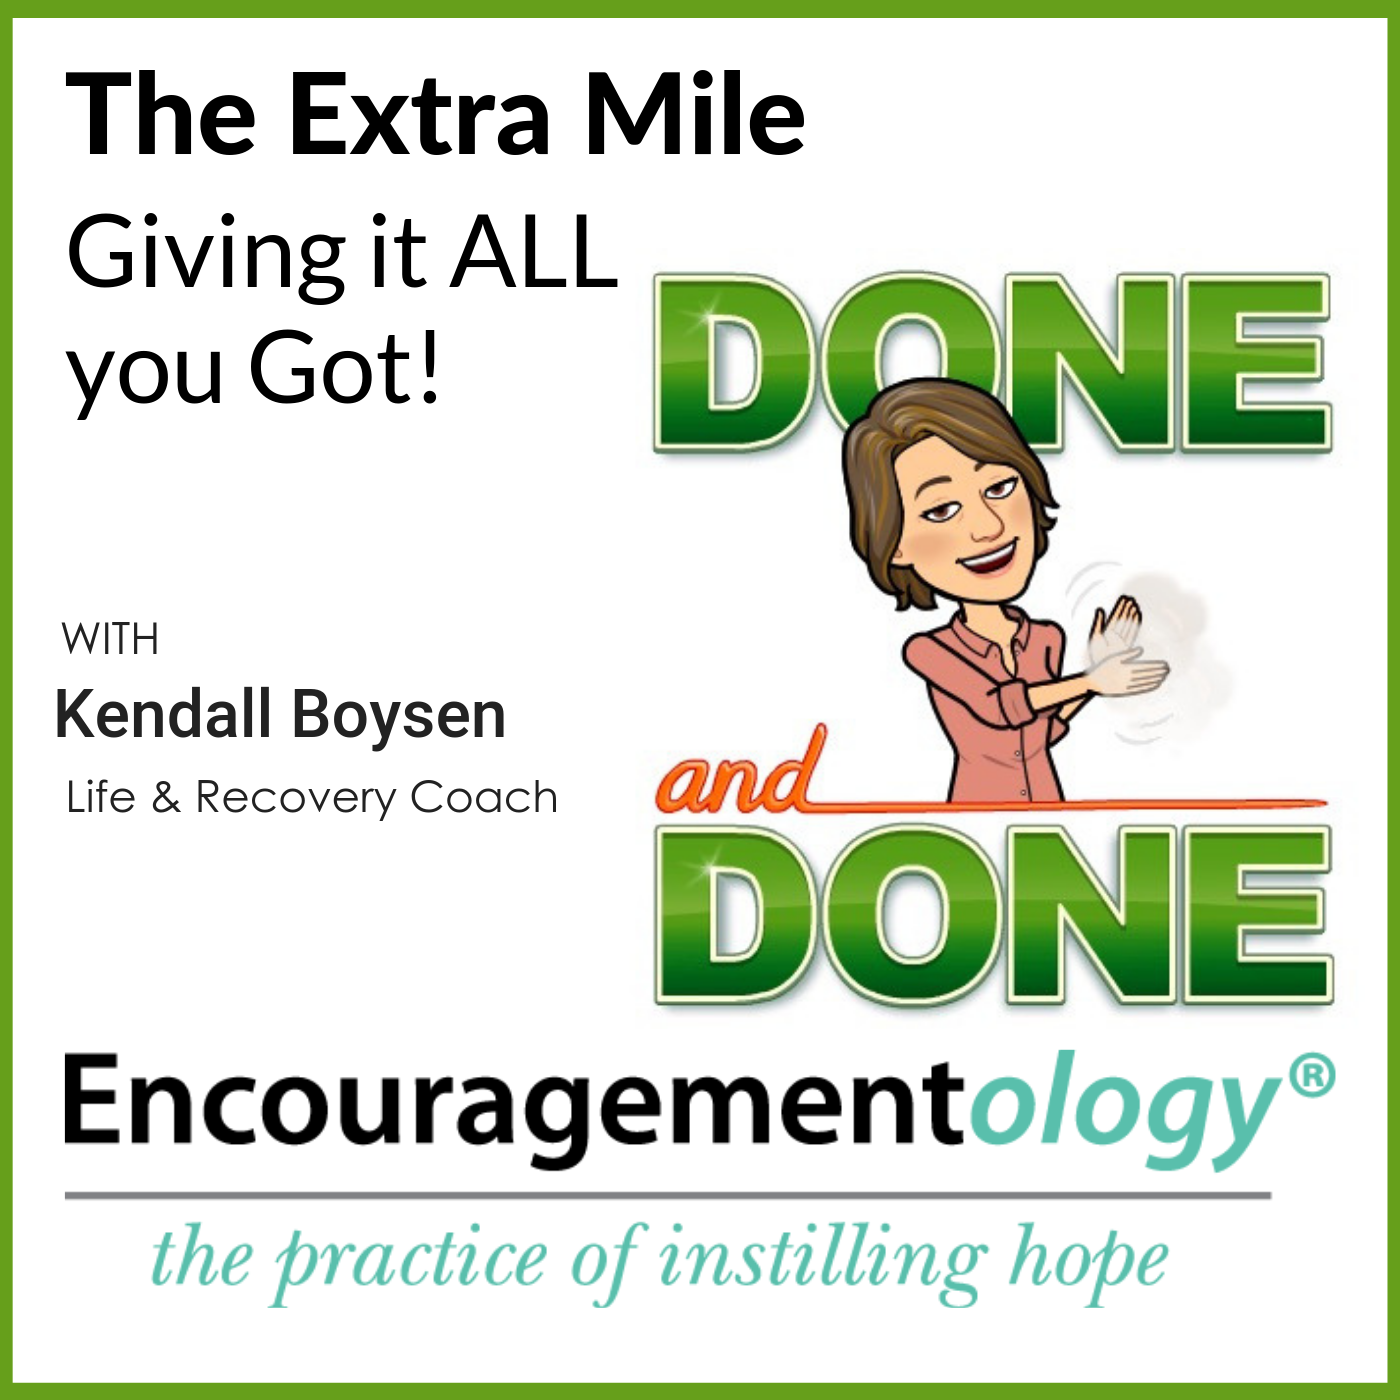 The Extra Mile, Giving it ALL you Got!